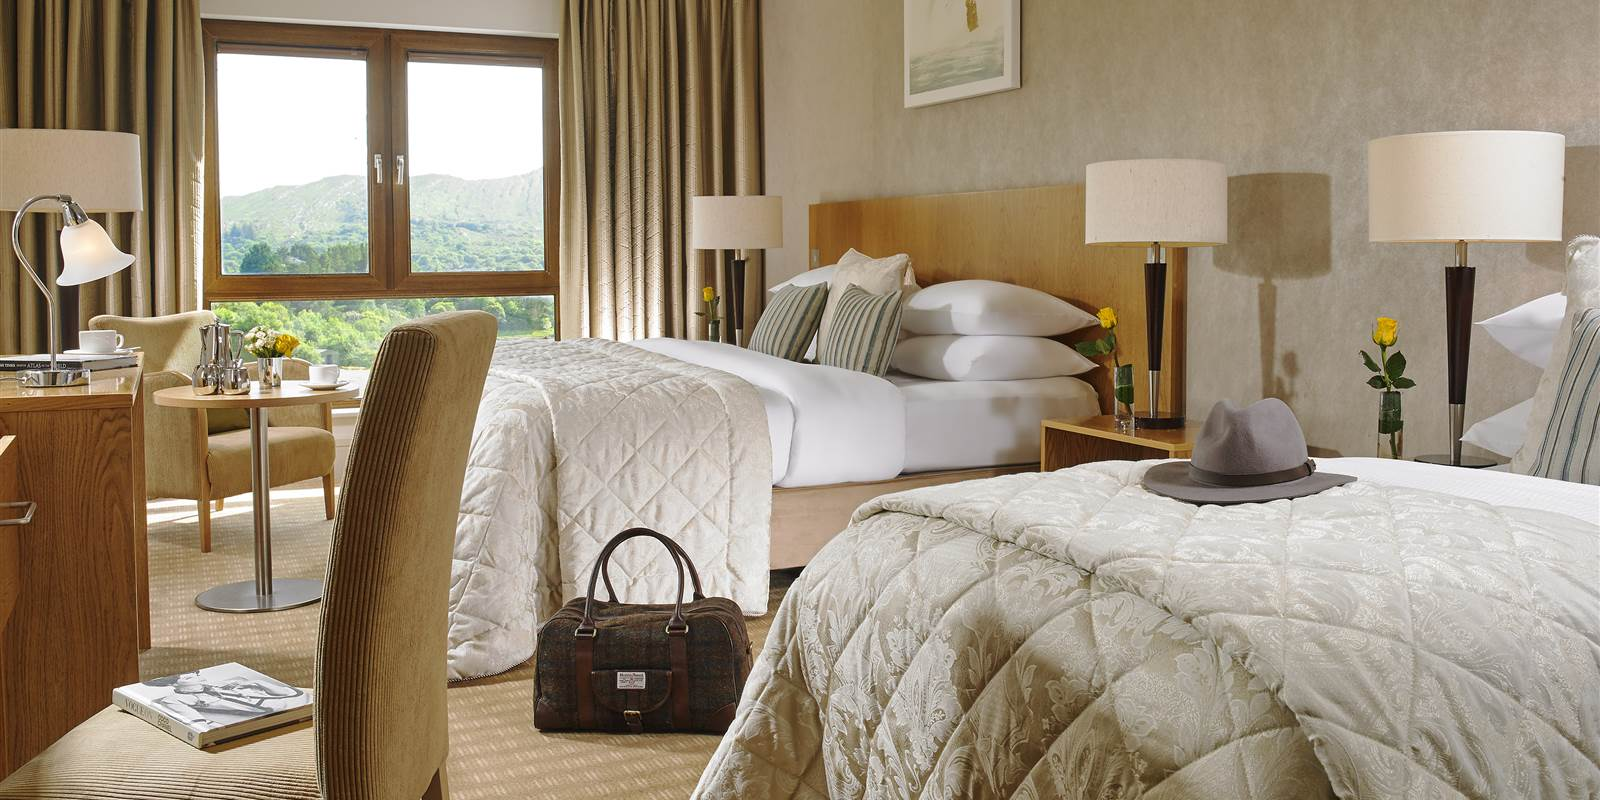 Superior Seaview Room 𝗙𝗿𝗼𝗺 €𝟭𝟮𝟬 𝗽𝗲𝗿 𝗿𝗼𝗼𝗺 and breakfast included. SNEEM 4 STAR HOTEL